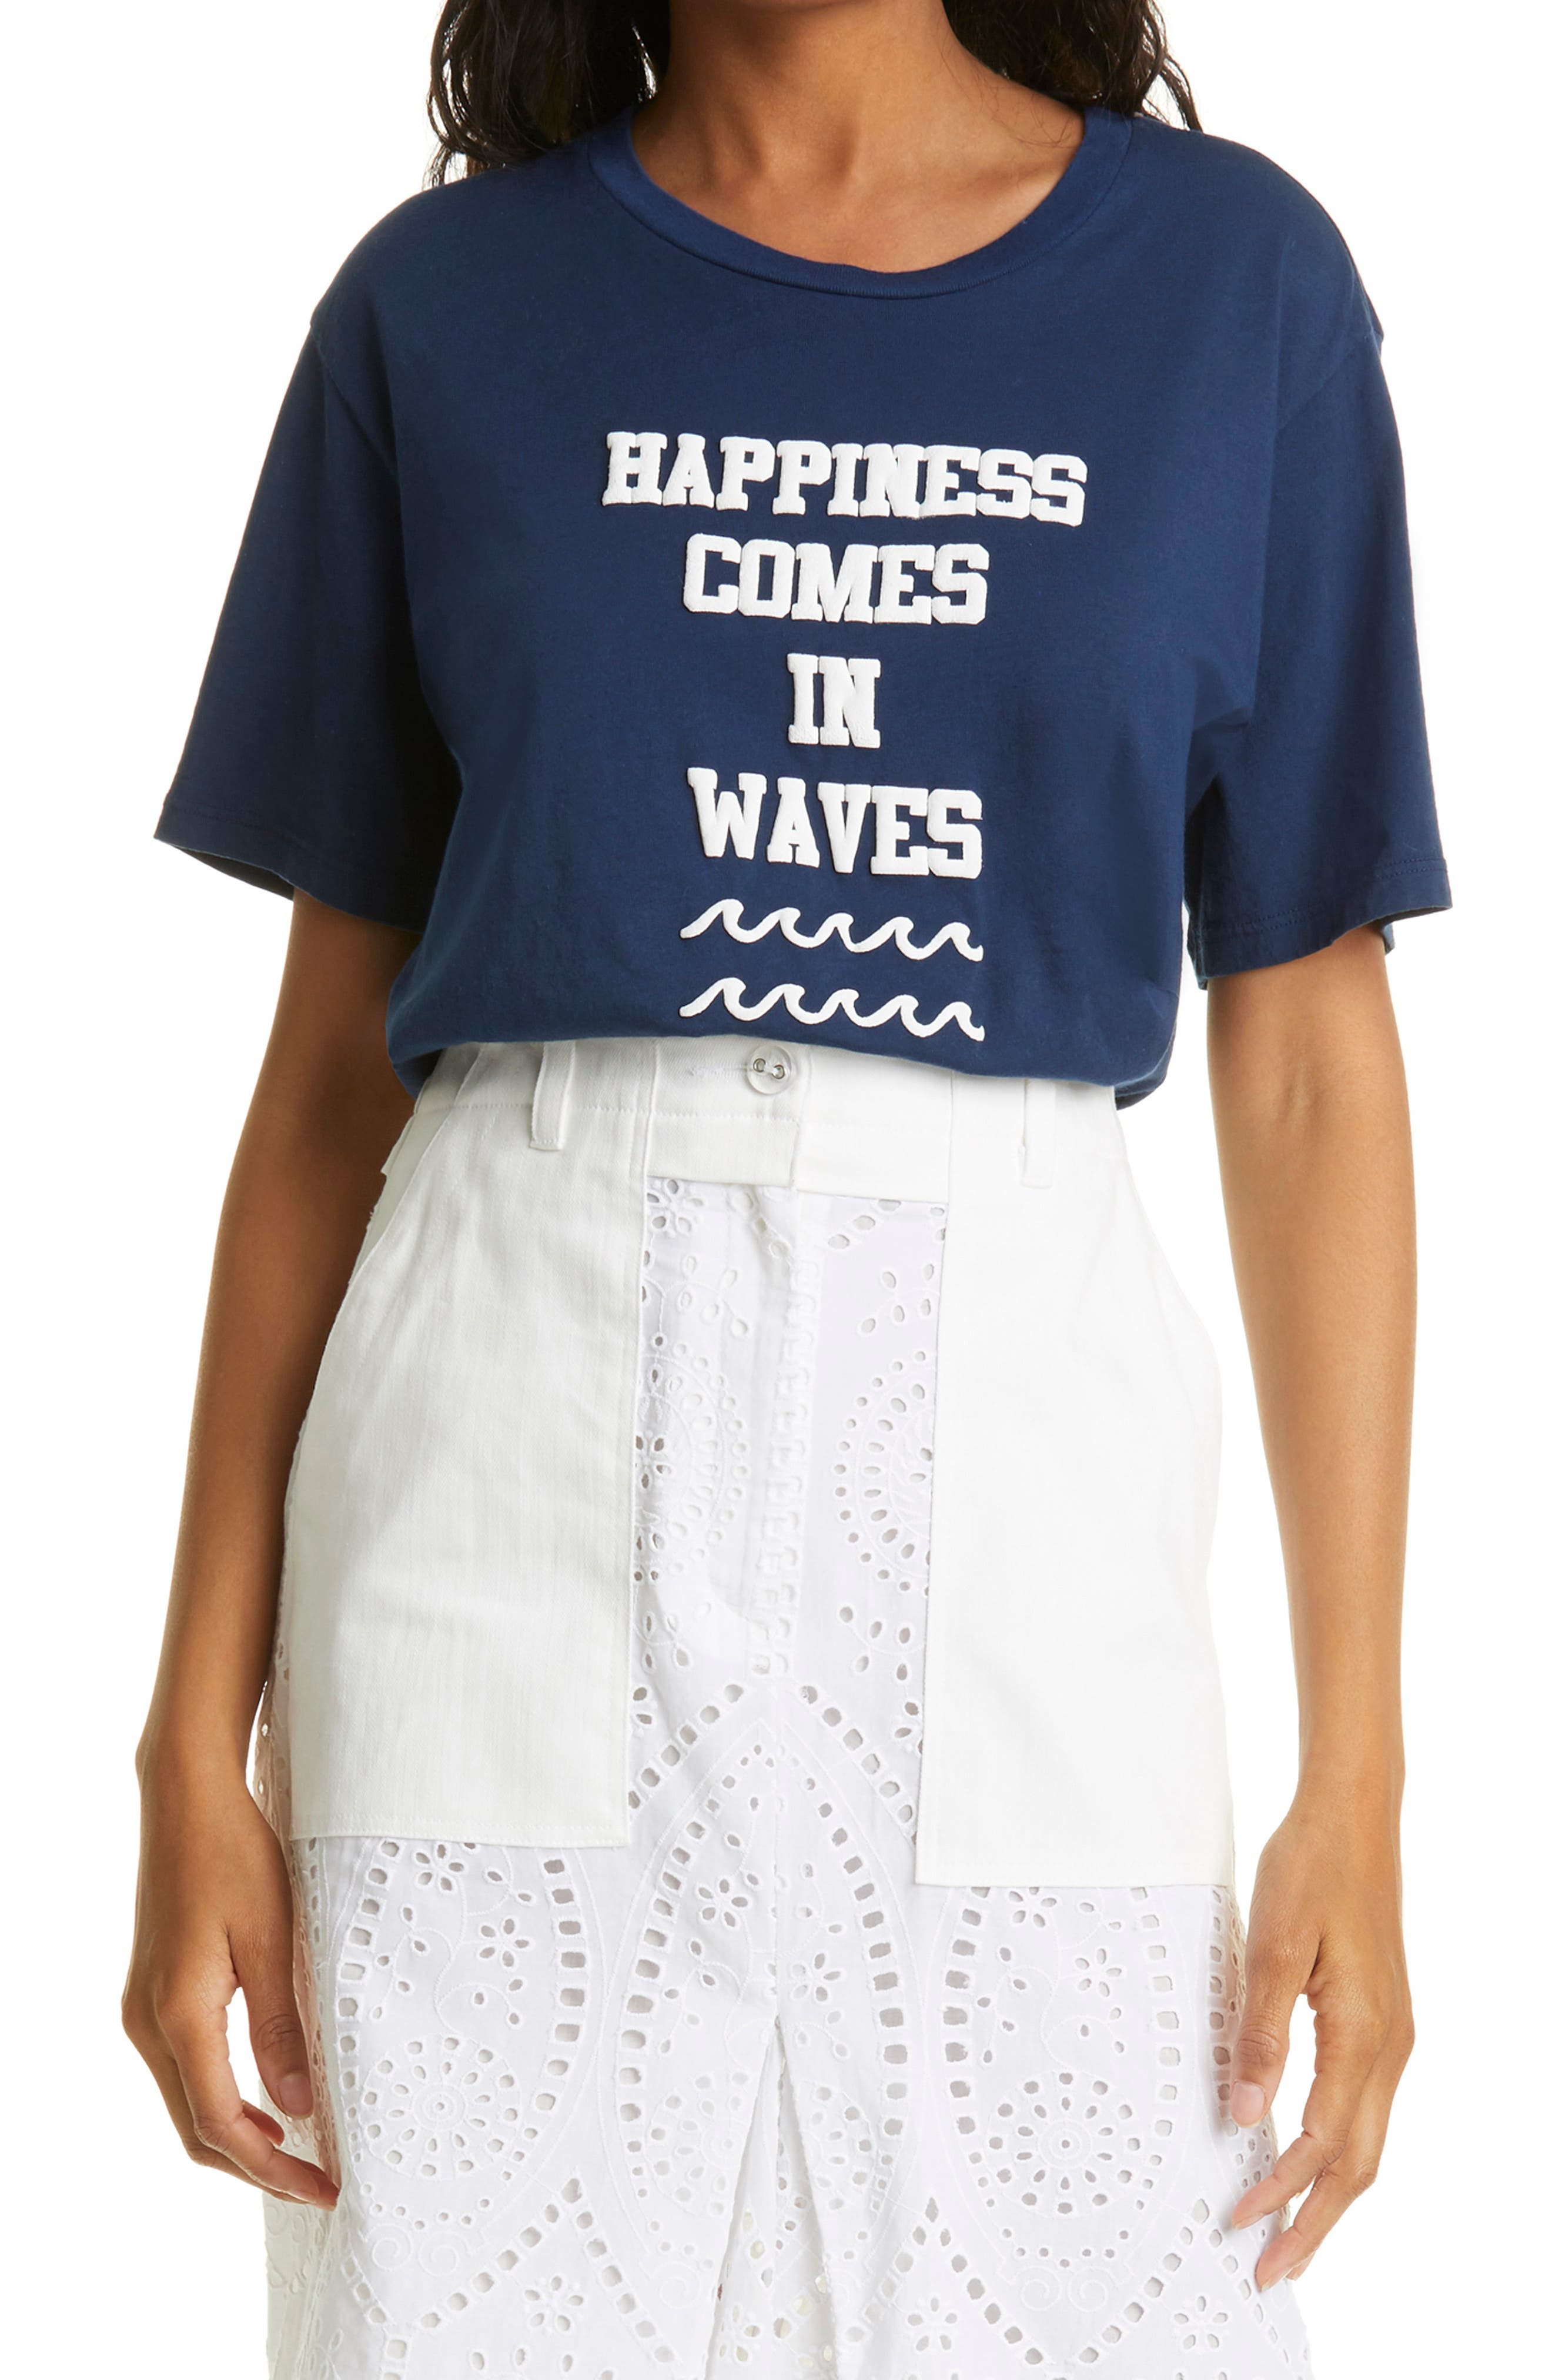 Happiness Comes In Waves Graphic Tee